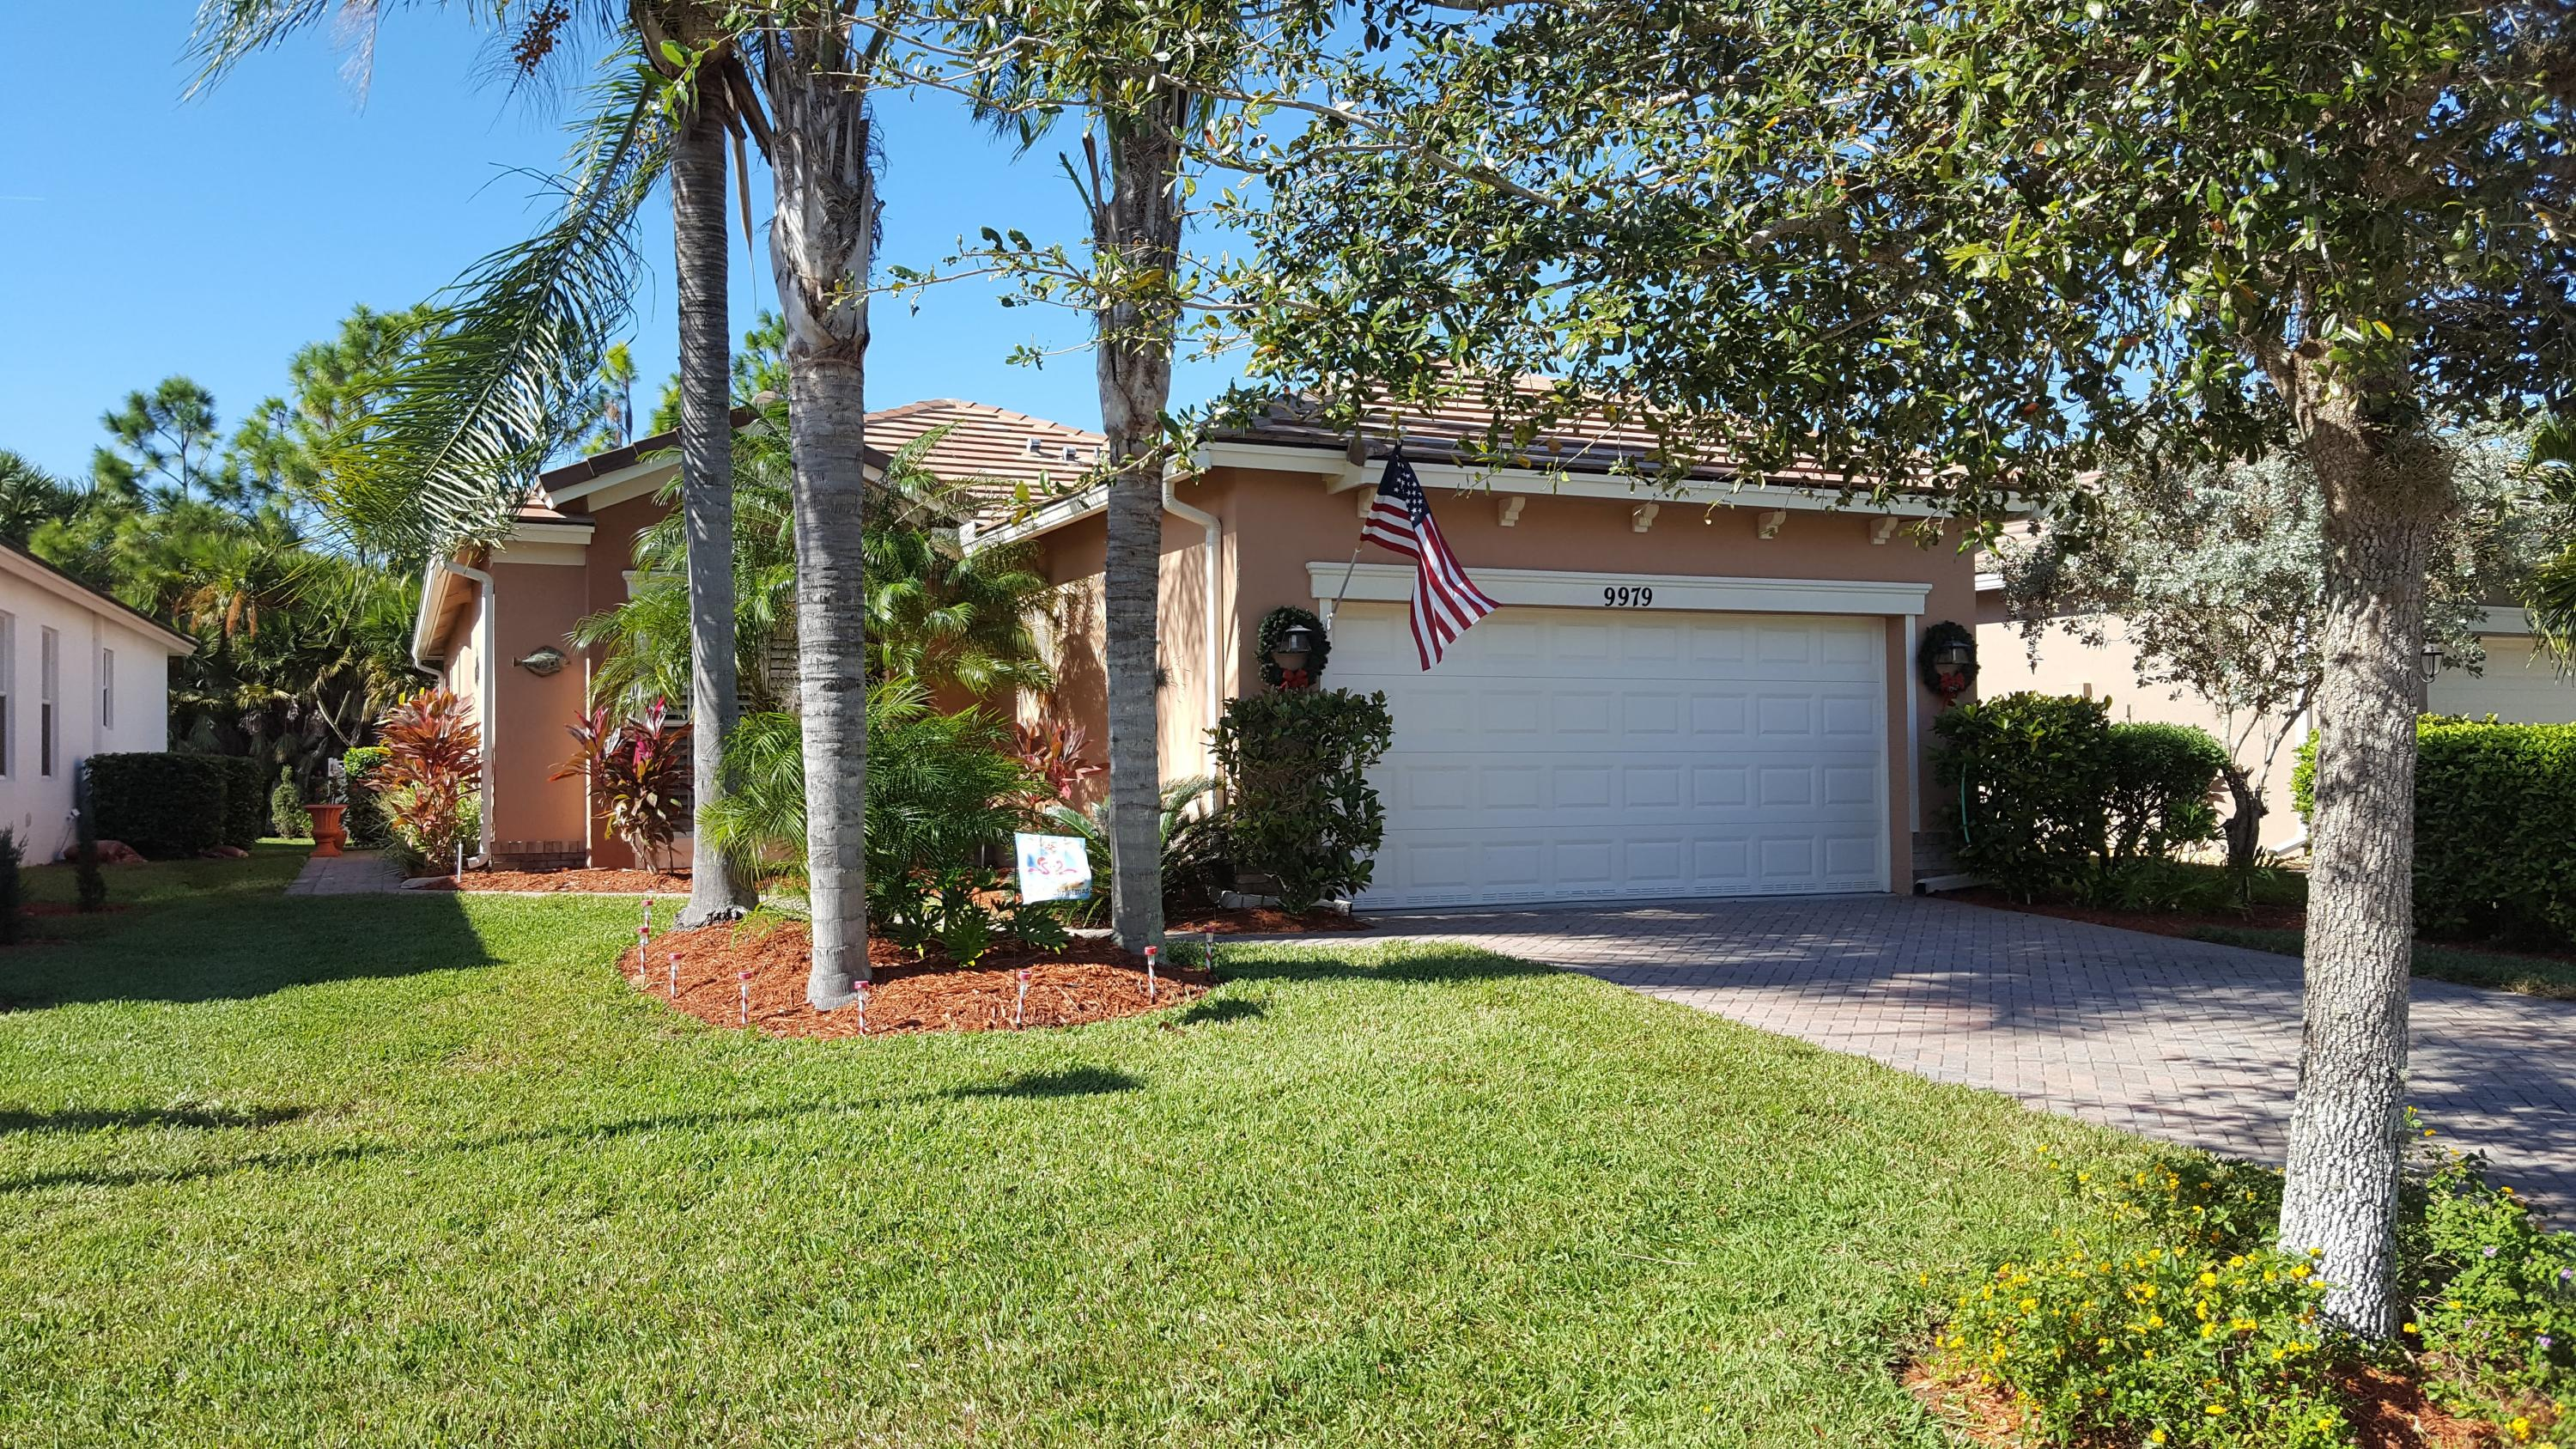 Stunning 3/2/2 open concept floor plan with numerous designer upgrades including glass entry door, plantation shutters, crown molding, wainscoating, ledge stone accent wall, black stainless Samsung appliances, granite counters with tiled backsplash and pendant lights above raised bar. Lovely landscaping, newly painted exterior, gutters and shaded, fenced yard. Meticulously maintained and cared for. Heritage Oaks is a family friendly gated community. Lovely clubhouse has swimming pool, weight room and an activity room which is used for several community activities. Begin living the dream...